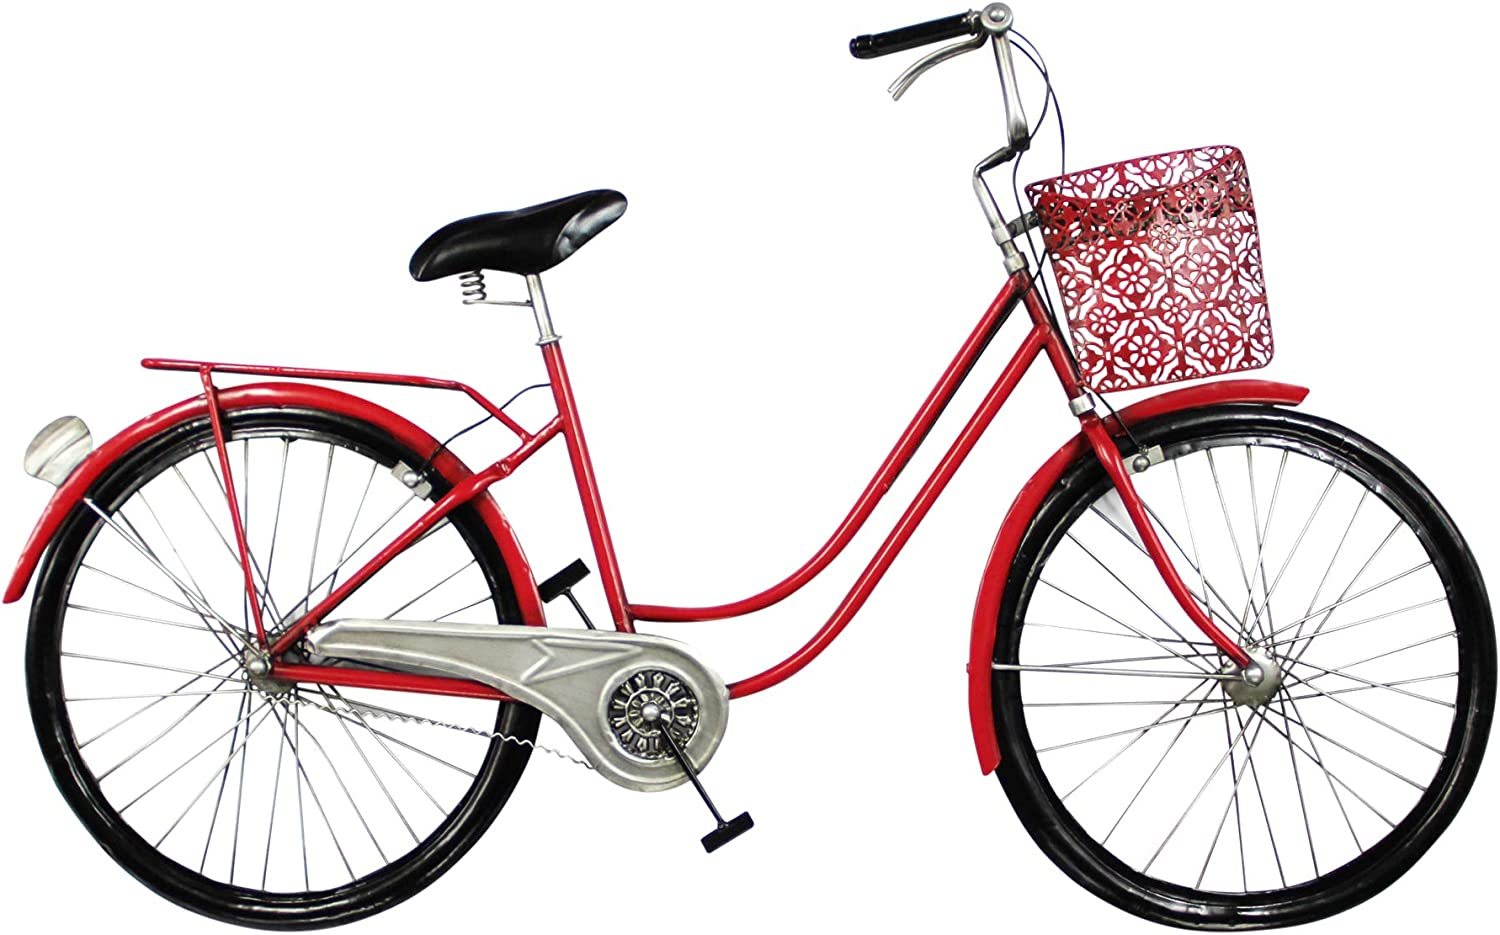 Vidal Regalos Adorno Decorativo Pared Bicicleta Roja 98 cm: Amazon ...